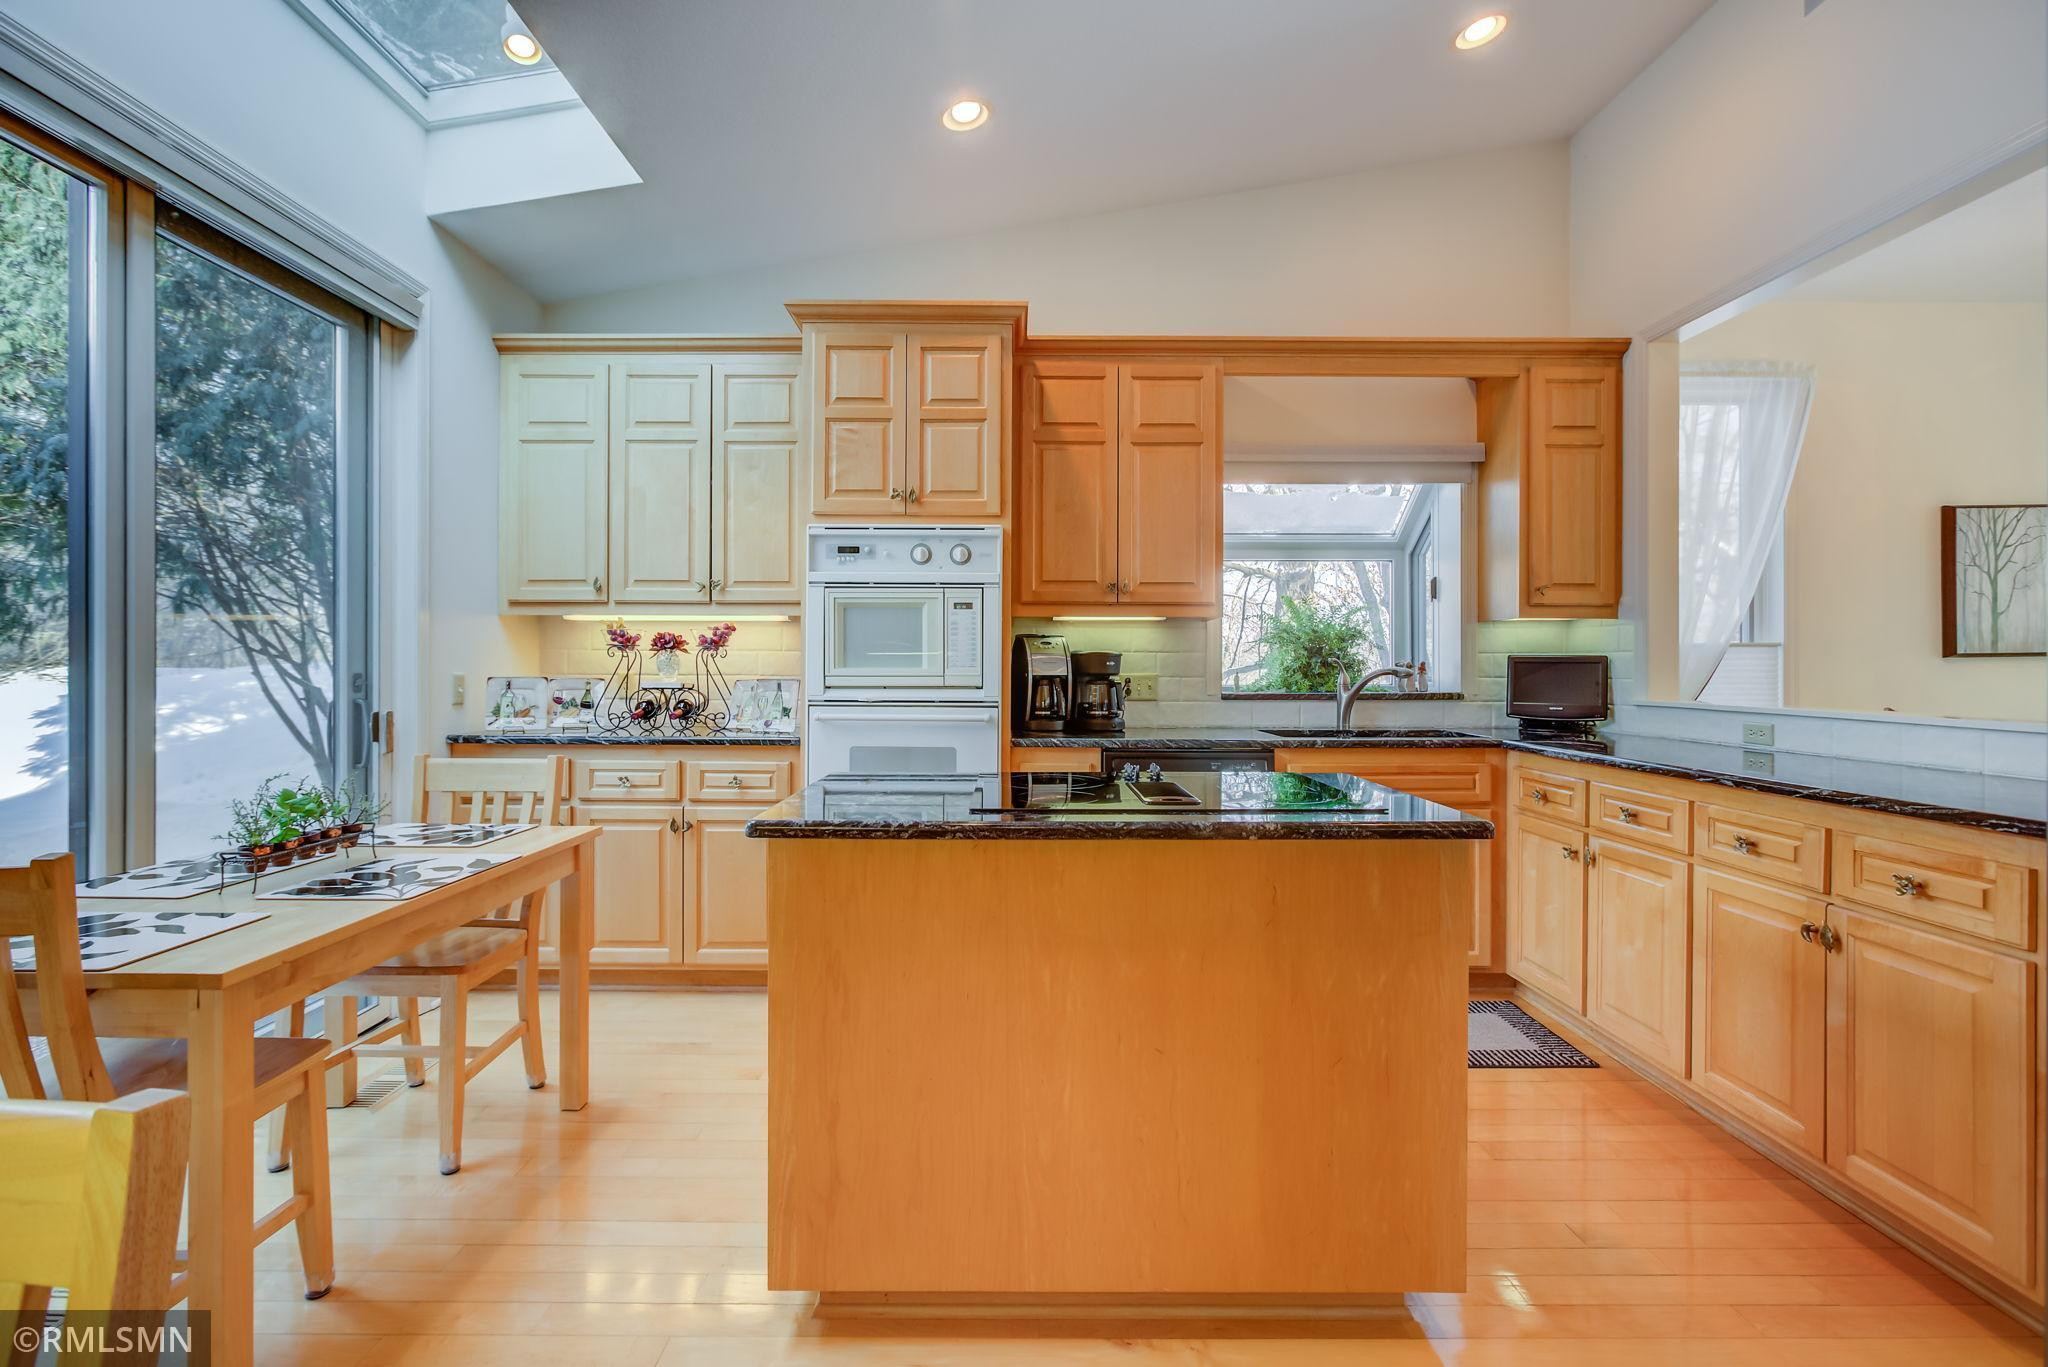 Bright & sunny Eat-In Kitchen, Maple Floors and Cabinets, Granite Countertops, Granite-Composite Sink, and Plenty of Storage.